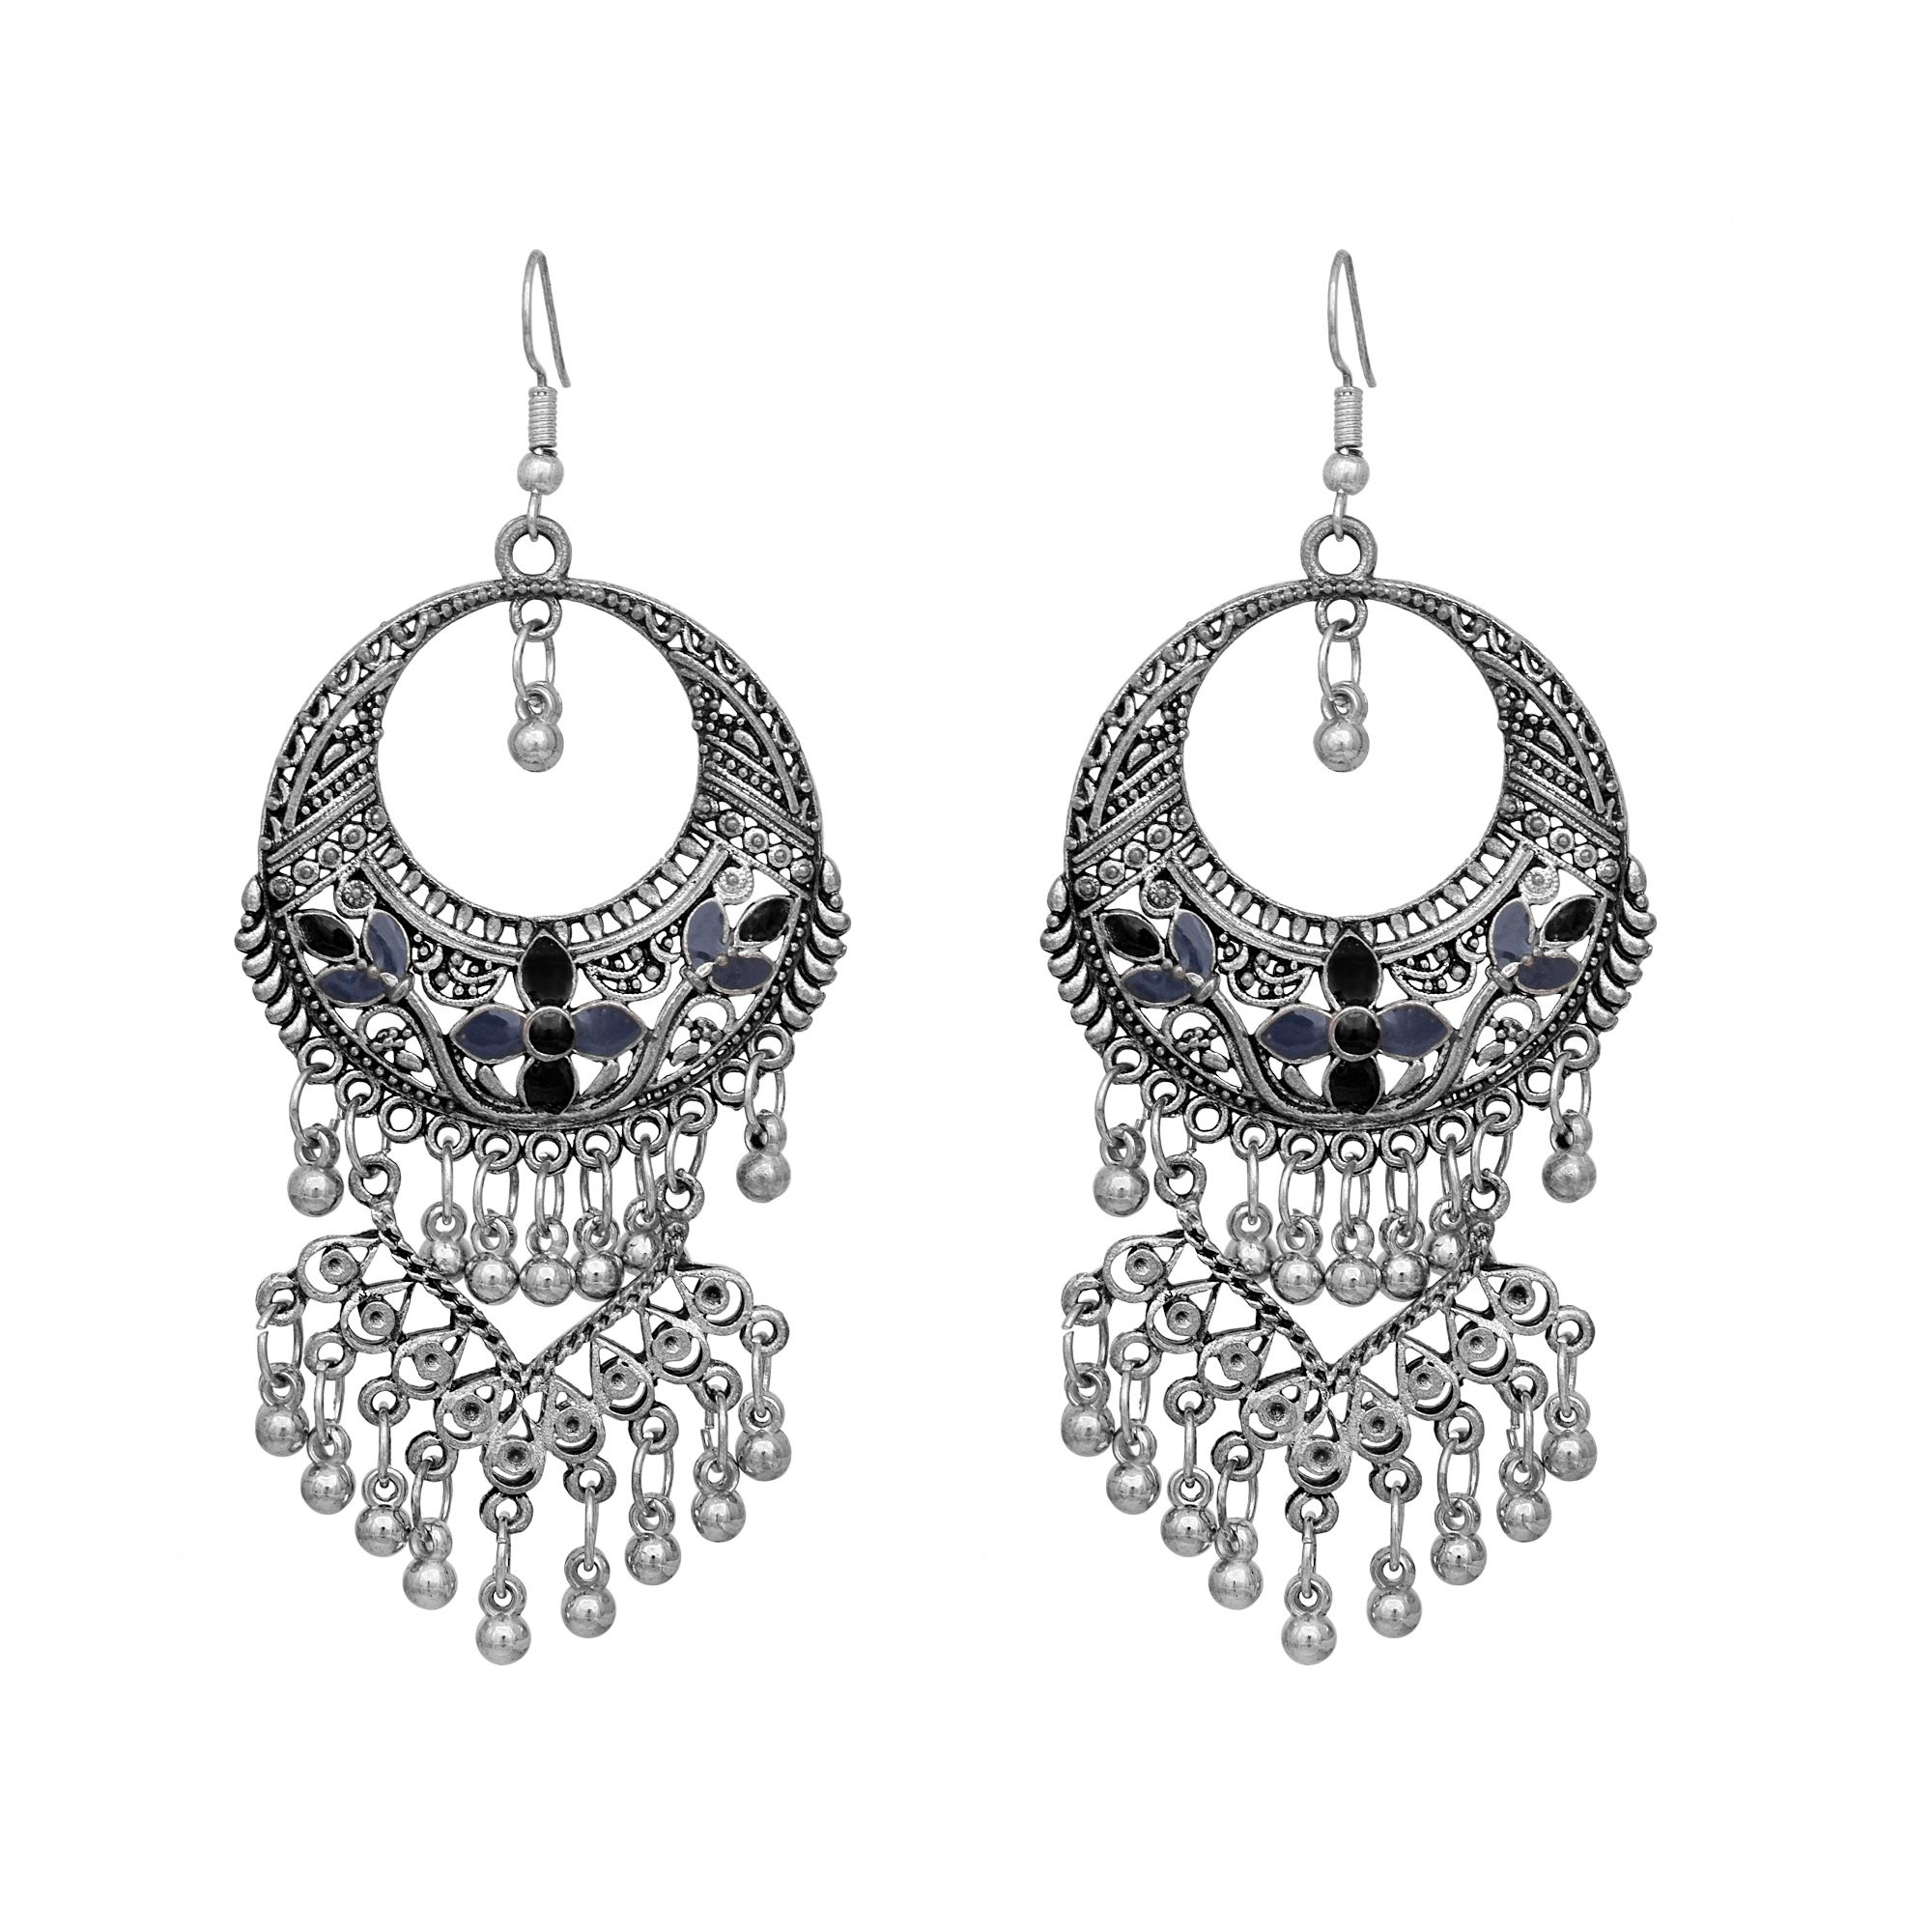 MBH Fashions Stylish Oxidised Dual Color Gray And Black Enamel With Beads Fancy Party Wear Chandbali Dangle Earrings for Women and Girls